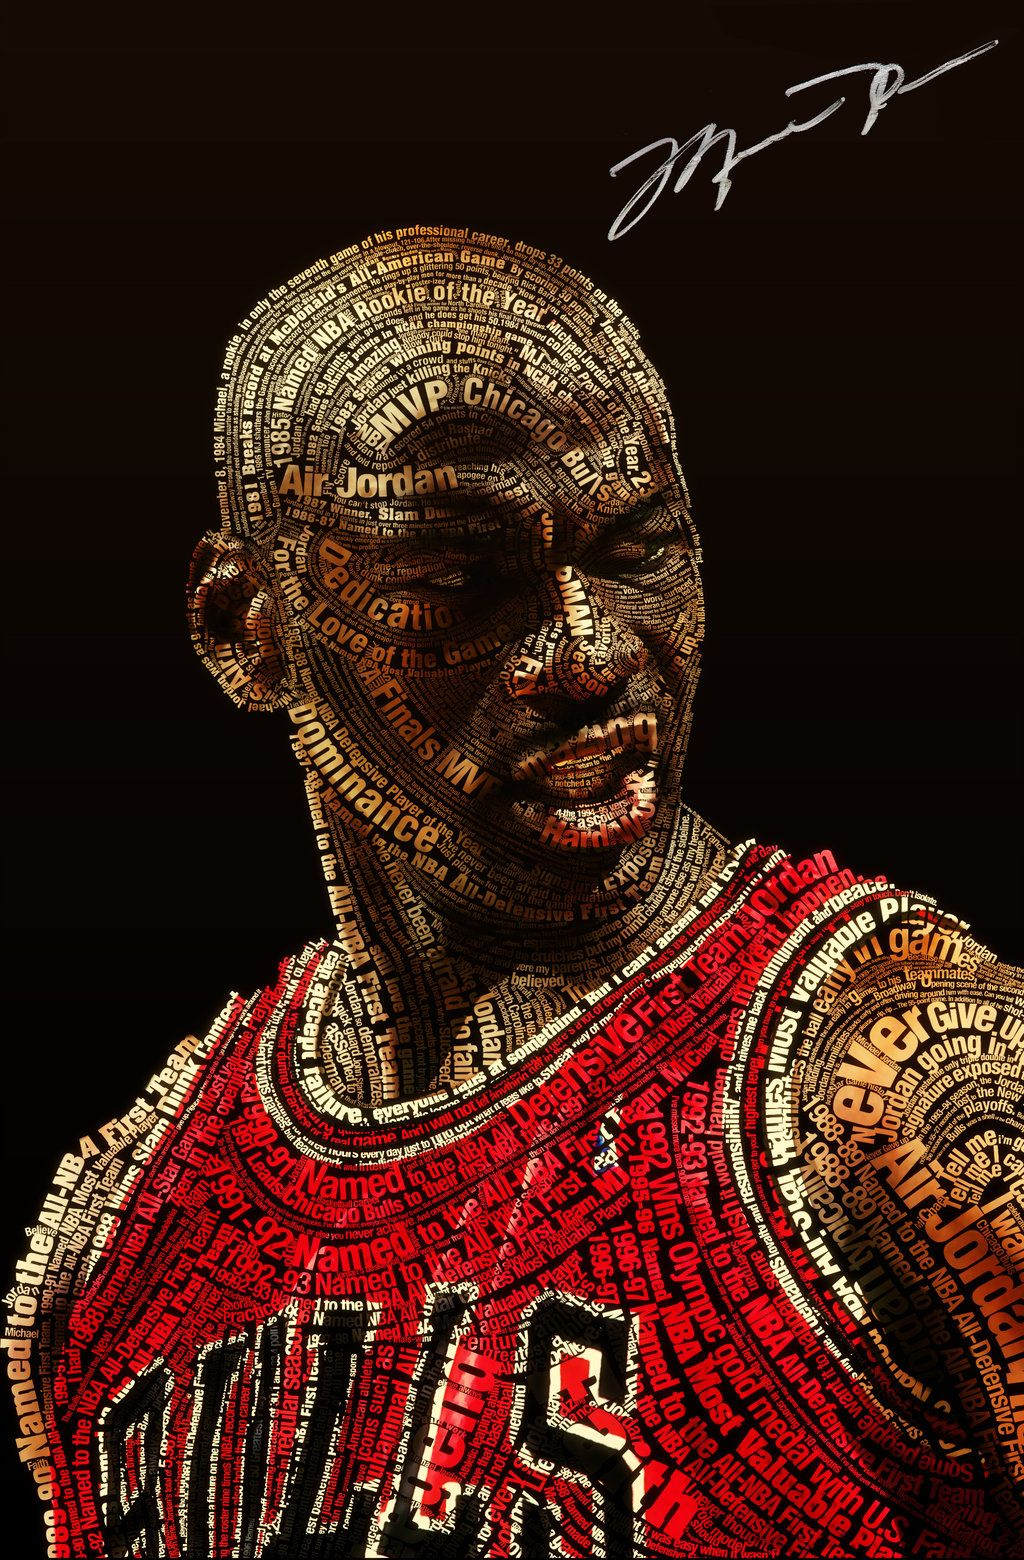 Michael jordan iphone wallpaper tumblr - This Image Was Interesting To Me Because Michael Jordan Is The G O A T Greatest Of All